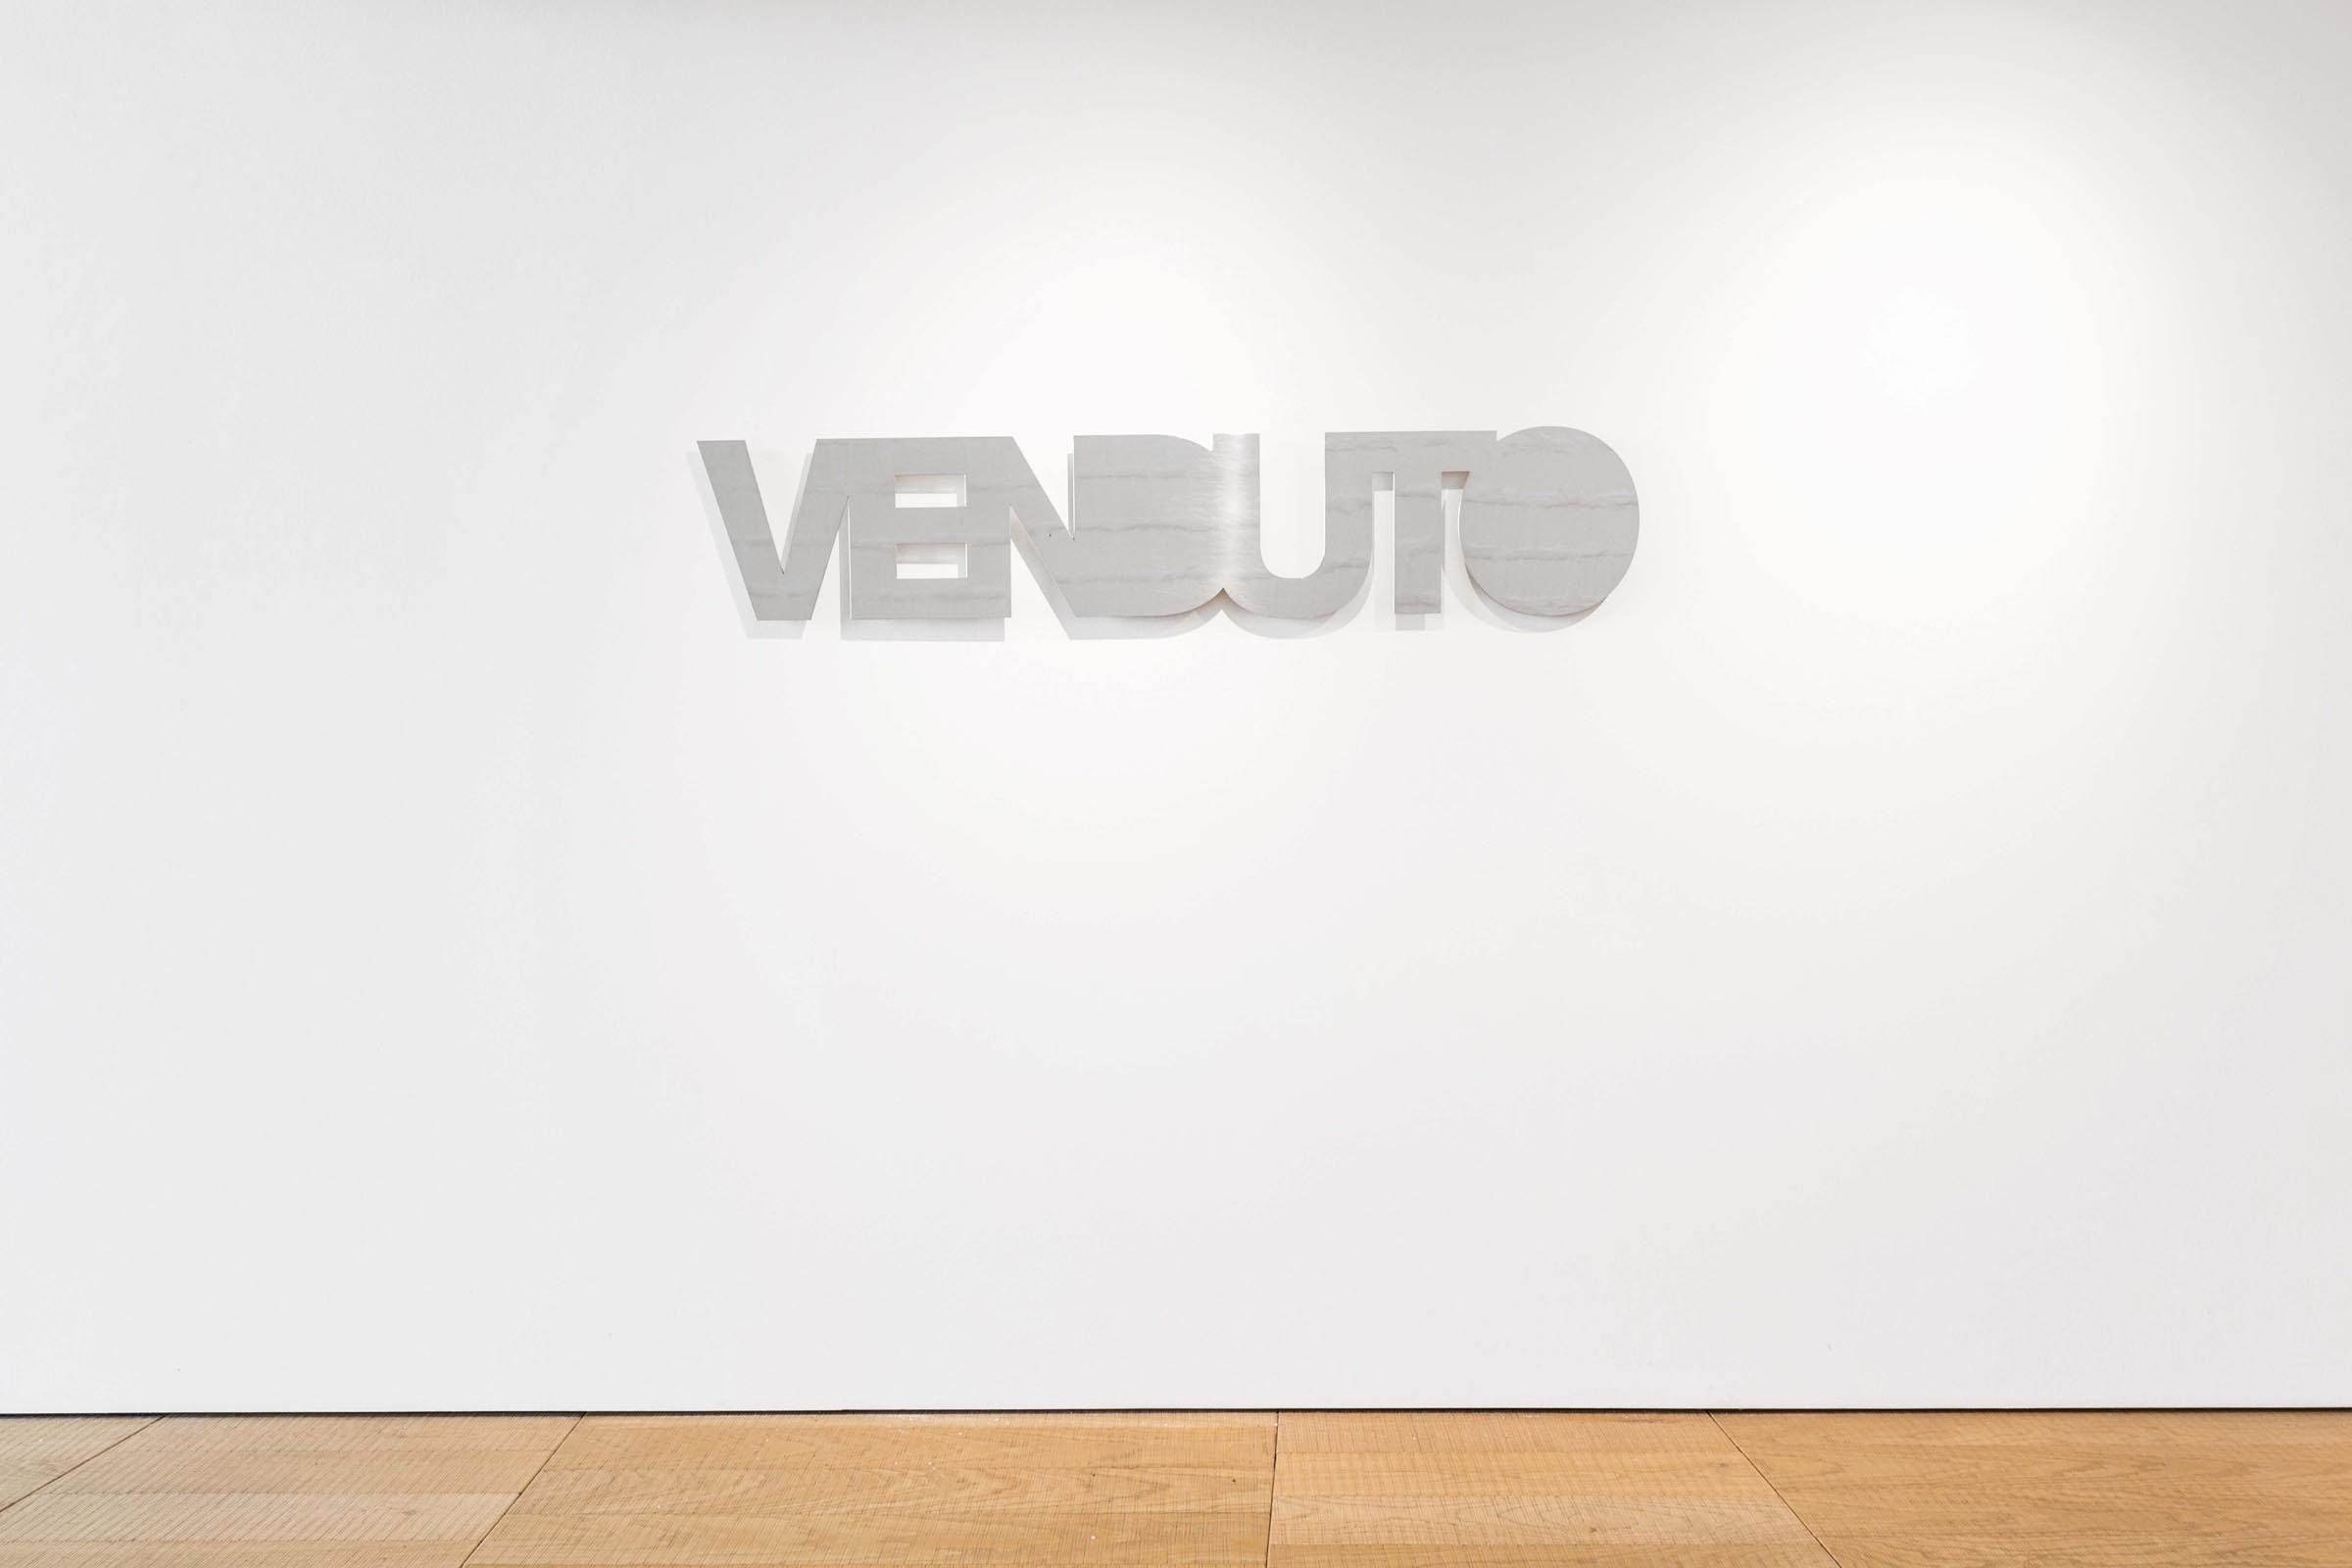 Matteo Attruia, Sold Out, show view, Galleria MDL, Venice, ph. N. Covre